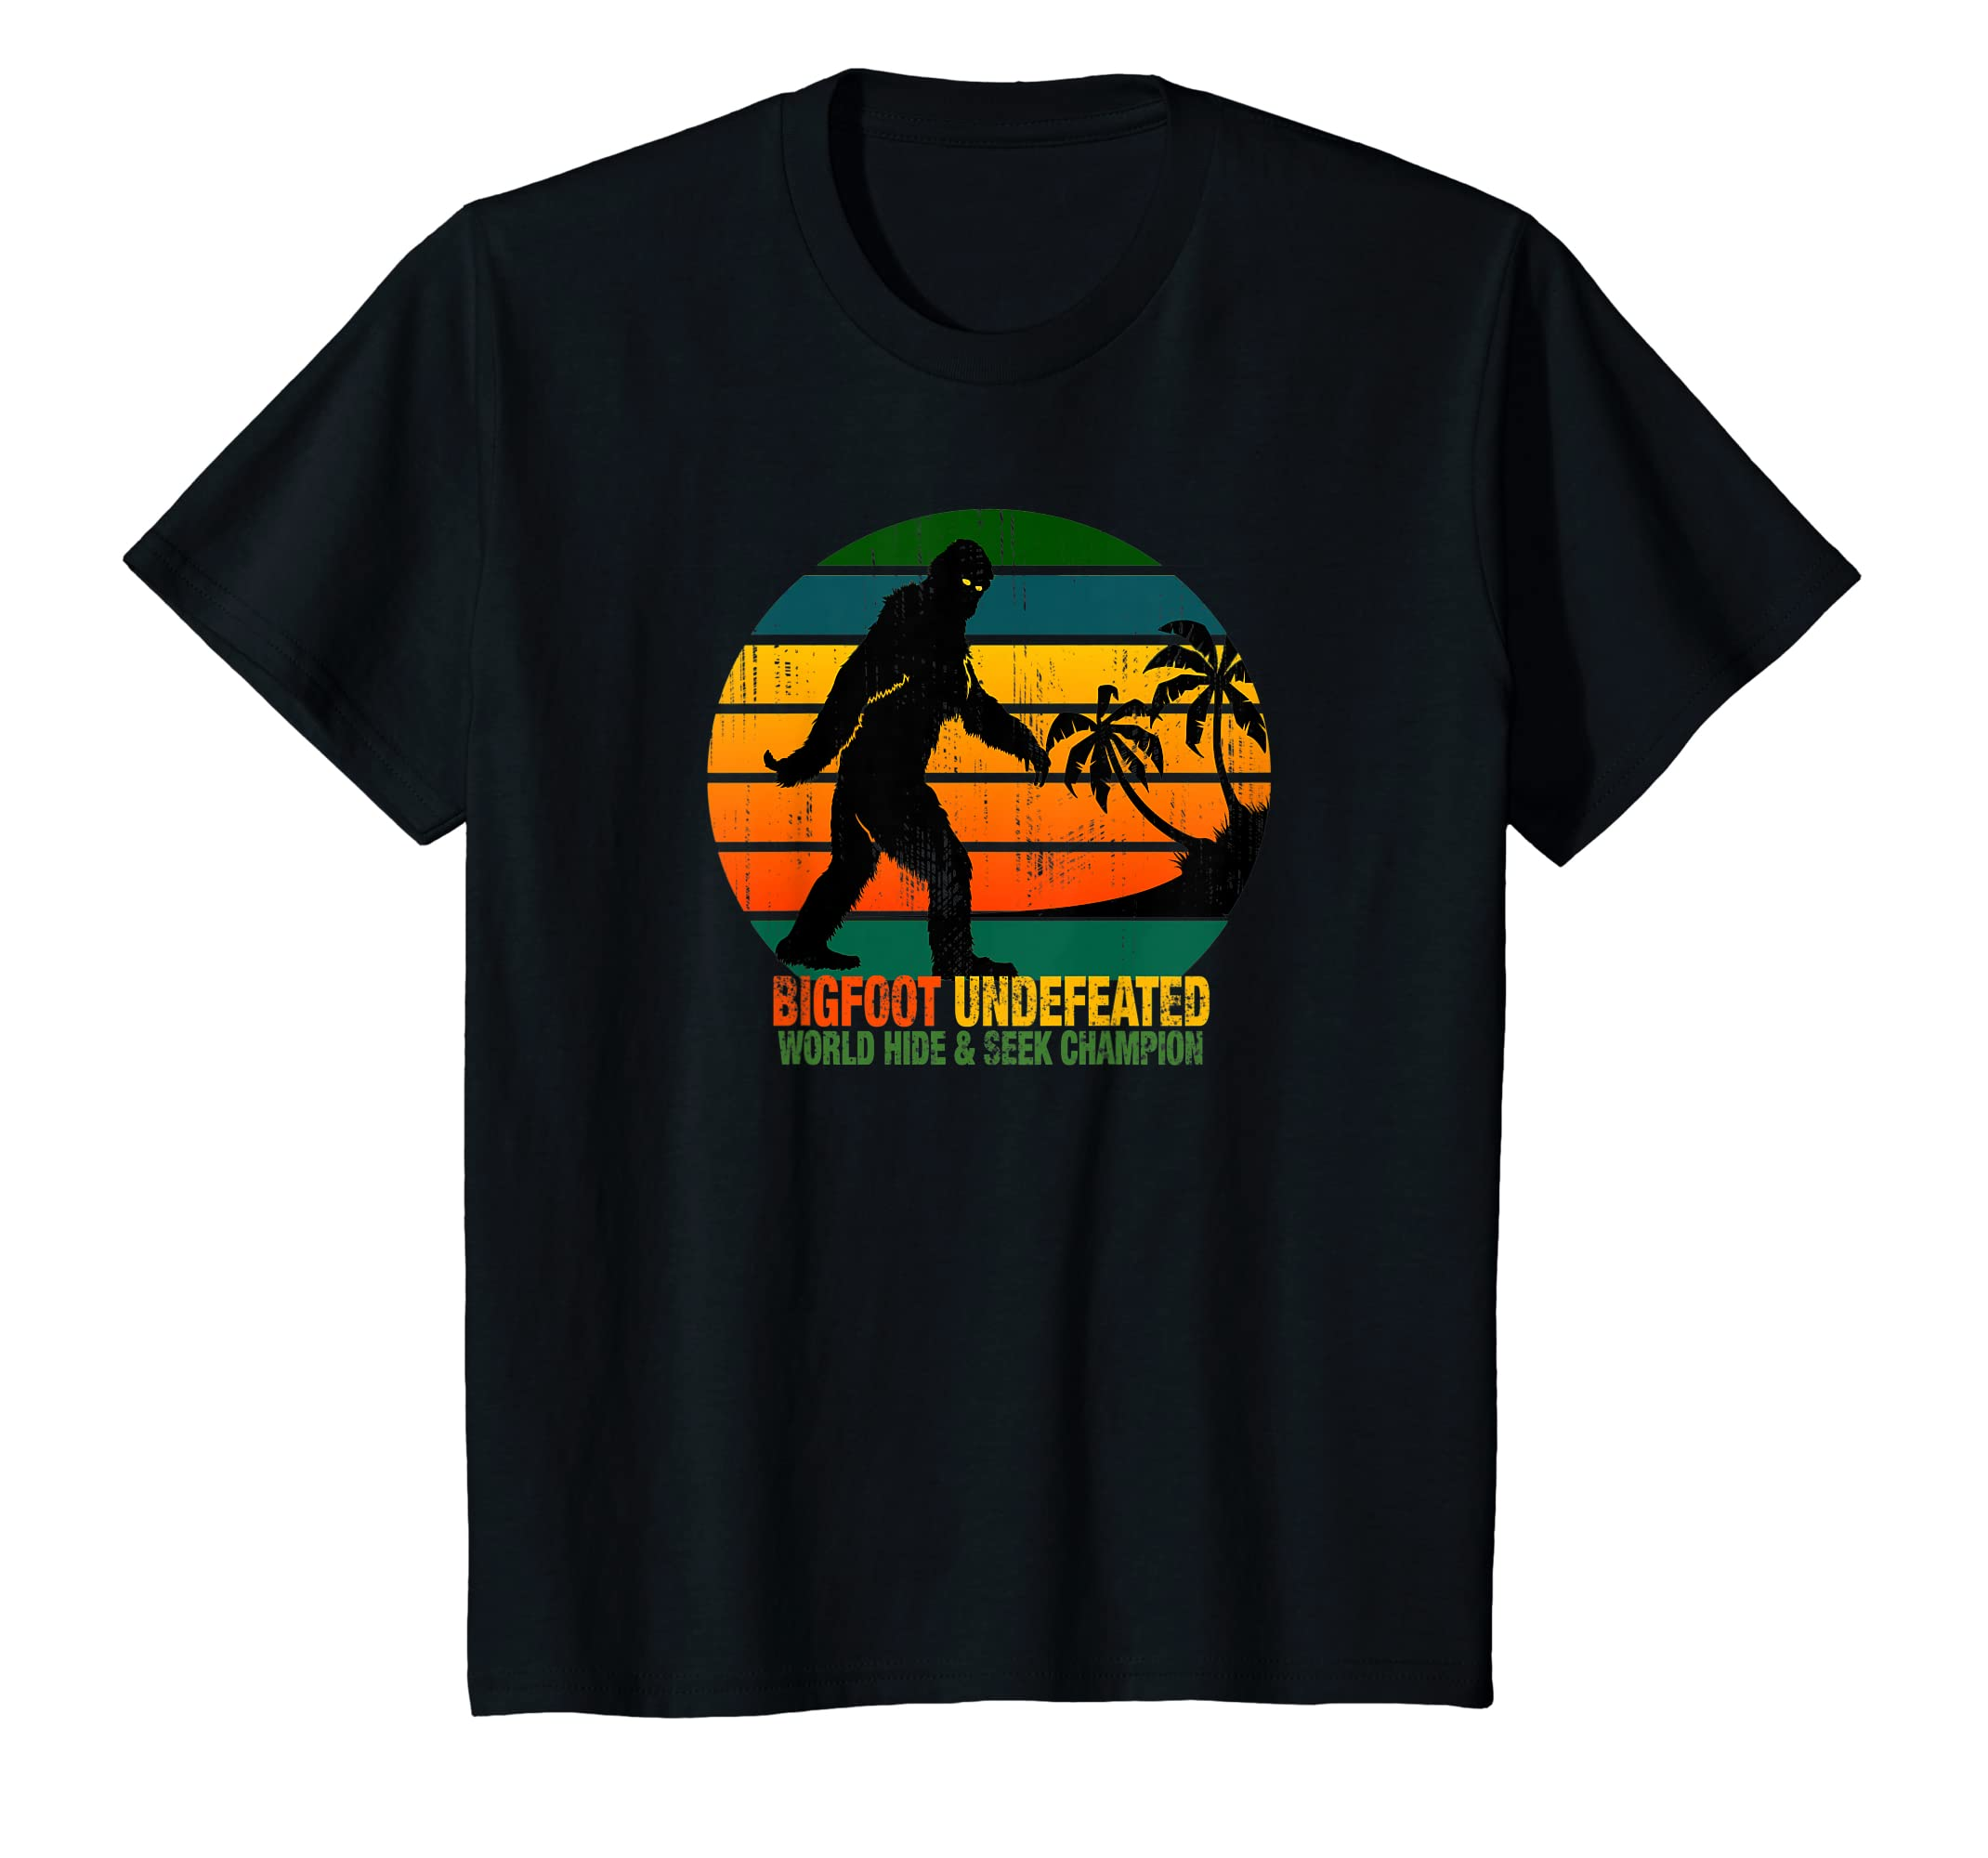 bc17bd28 Amazon.com: Bigfoot Undefeated World Hide & Seek Champion T Shirt: Clothing